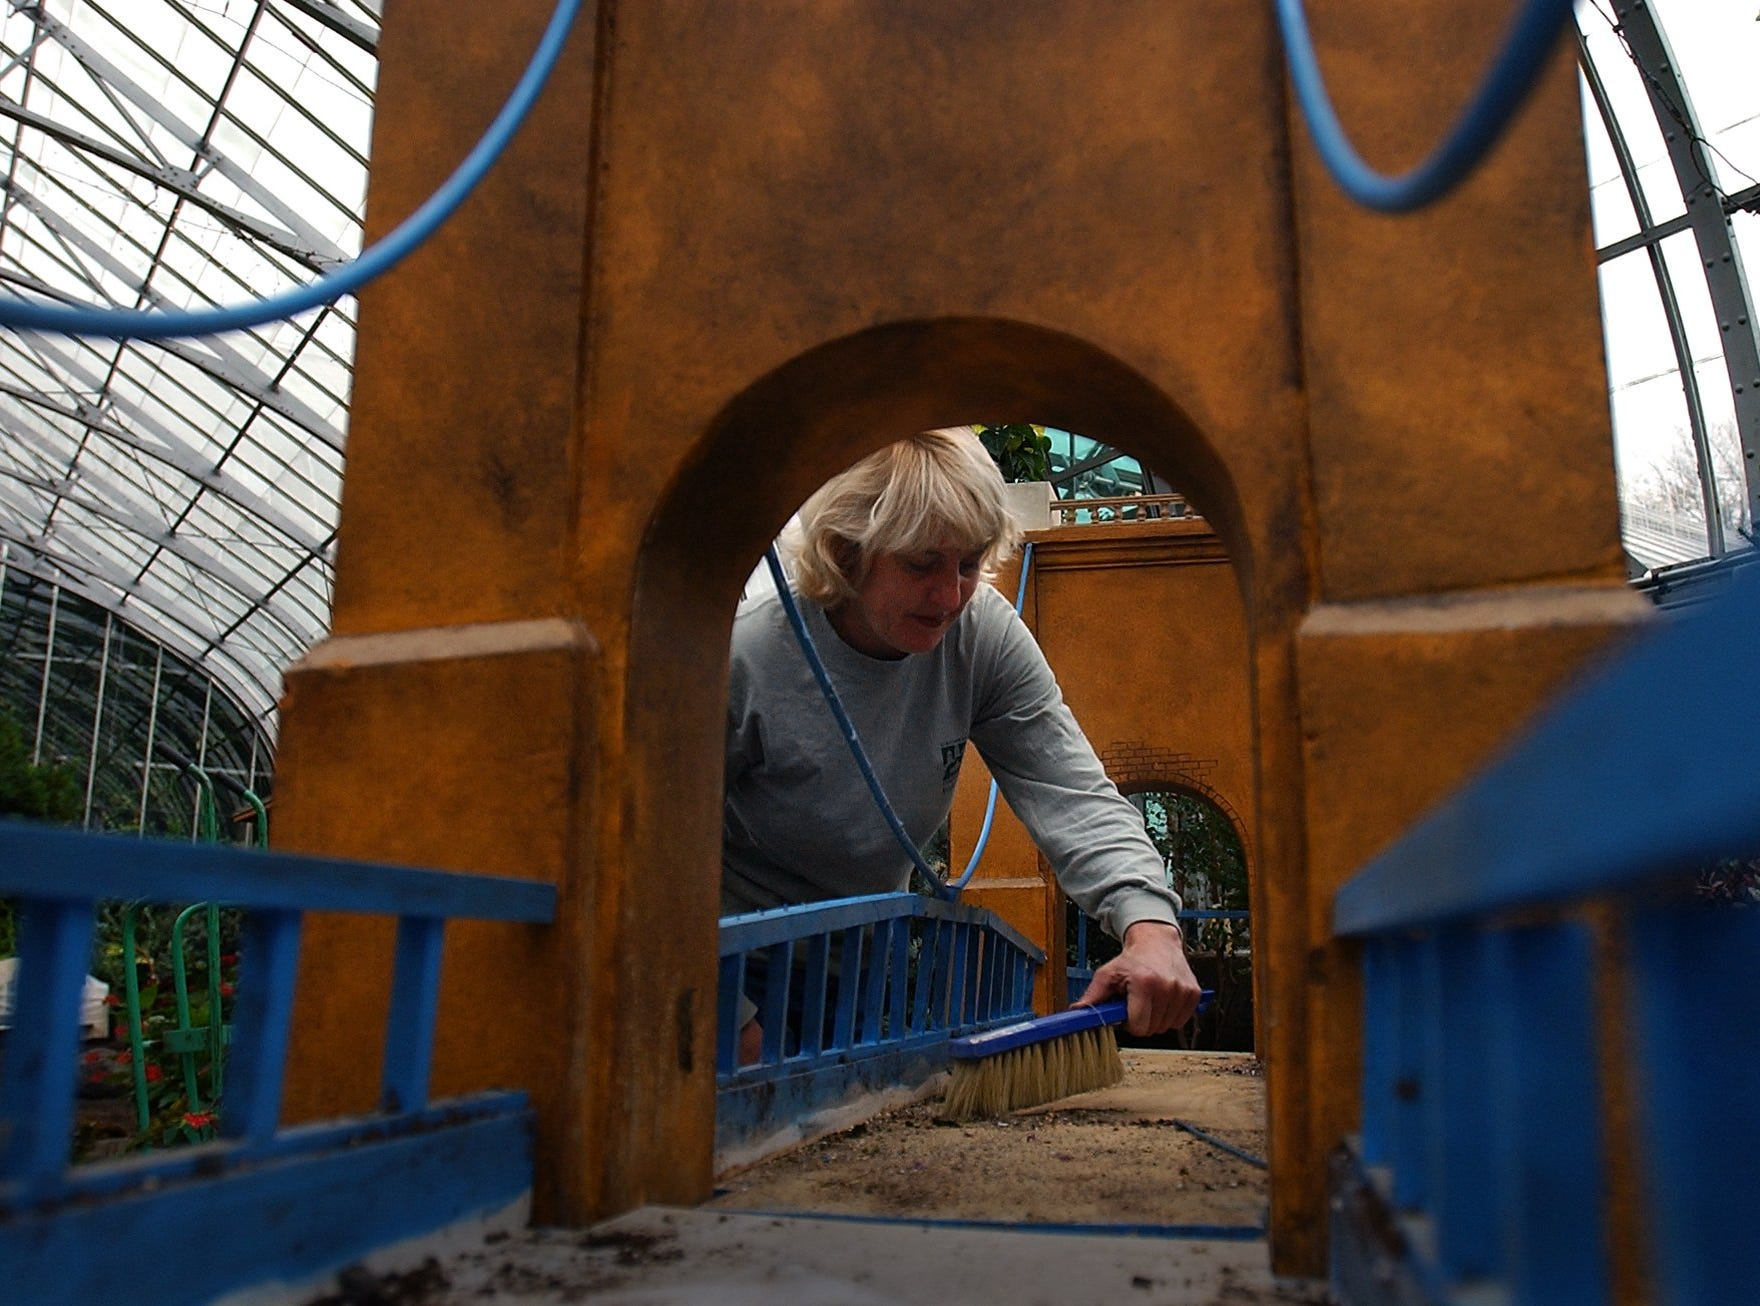 THURSDAY NOVEMBER 14, 2002 KROHN METRO Tracy Fryburger, a Krohn Conservatory designer, sweeps debris from a scale model of the Roebling Suspension Bridge. The annual holiday floral exhibit at Krohn Conservatory will feature Cincinnati landmarks amid floral displays. The exhibit opens November 22, 2002. Cincinnati Enquirer/Michael E. Keating mek